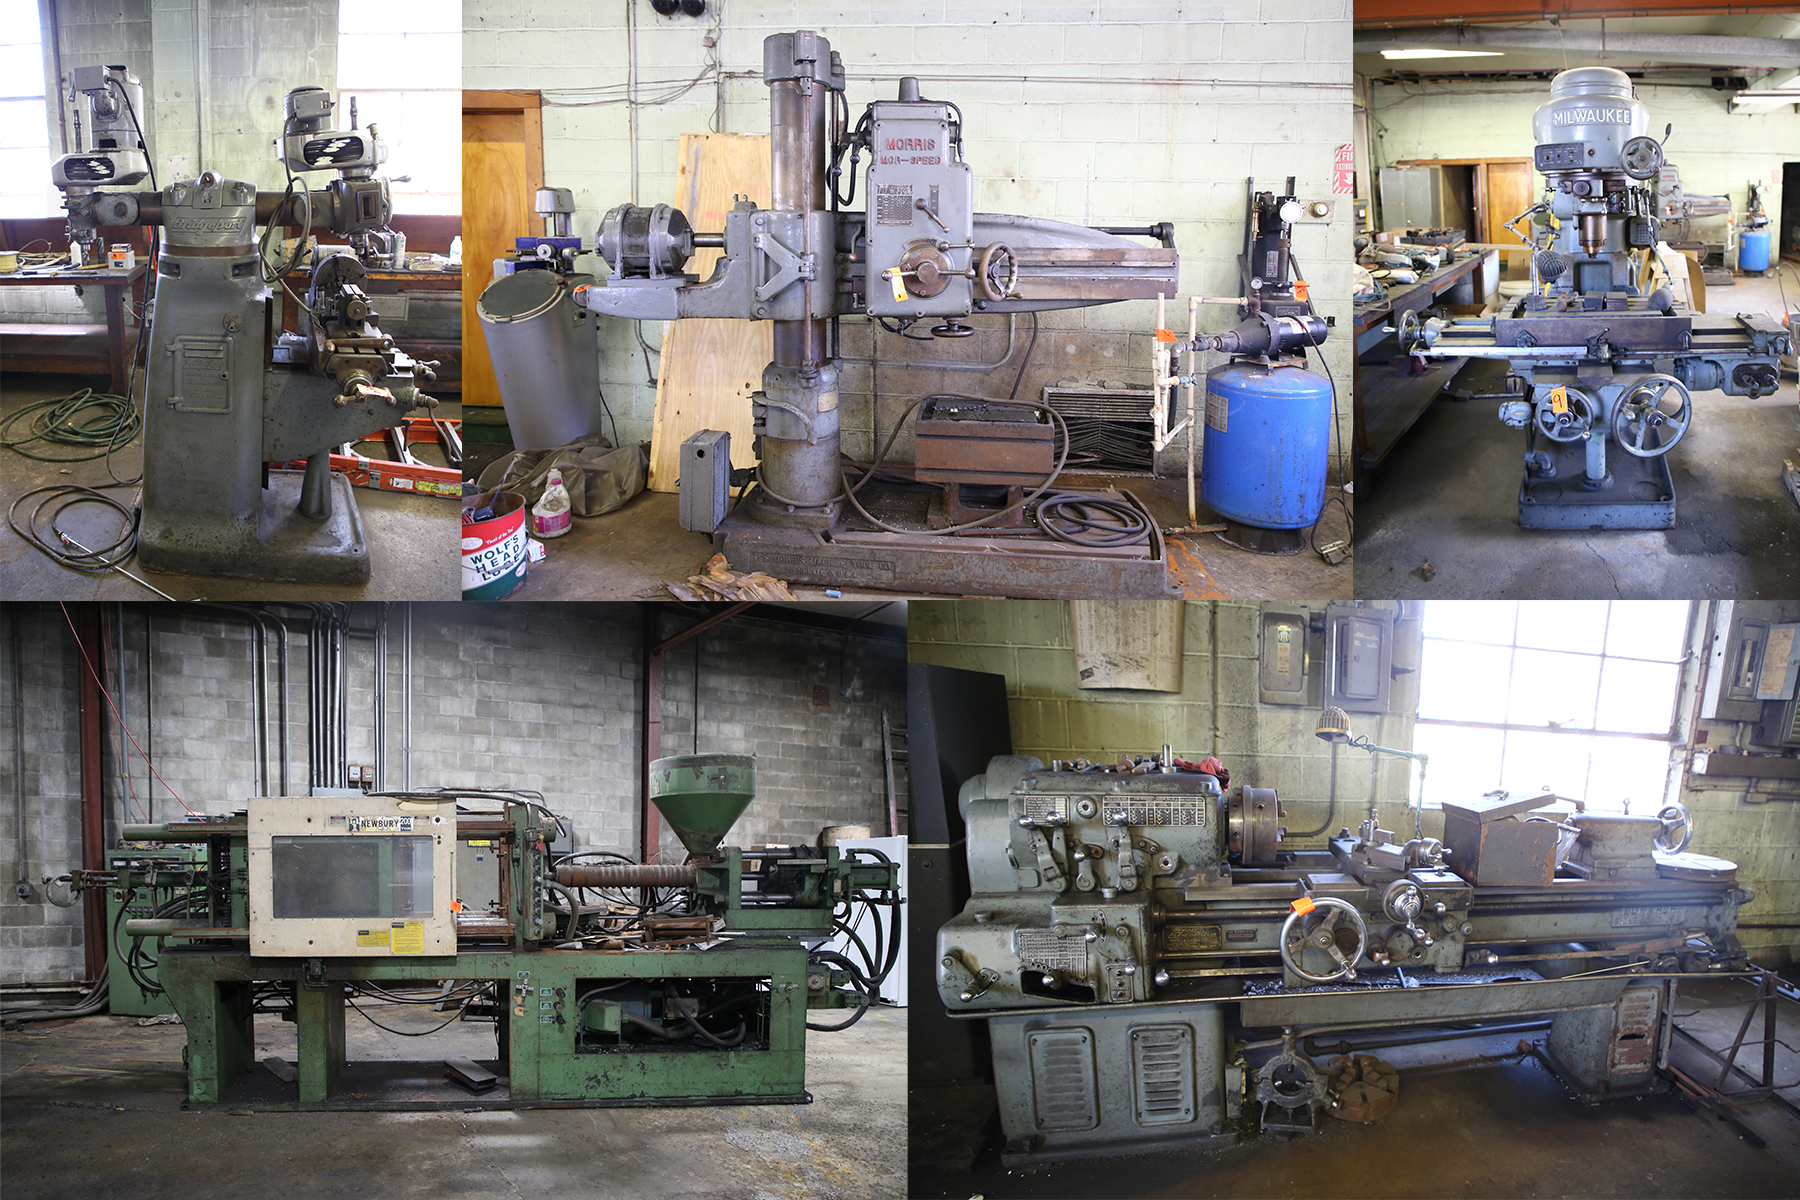 SOLD - JEFFERSON TOWNSHIP METALWORKING/PLASTIC INJECTION